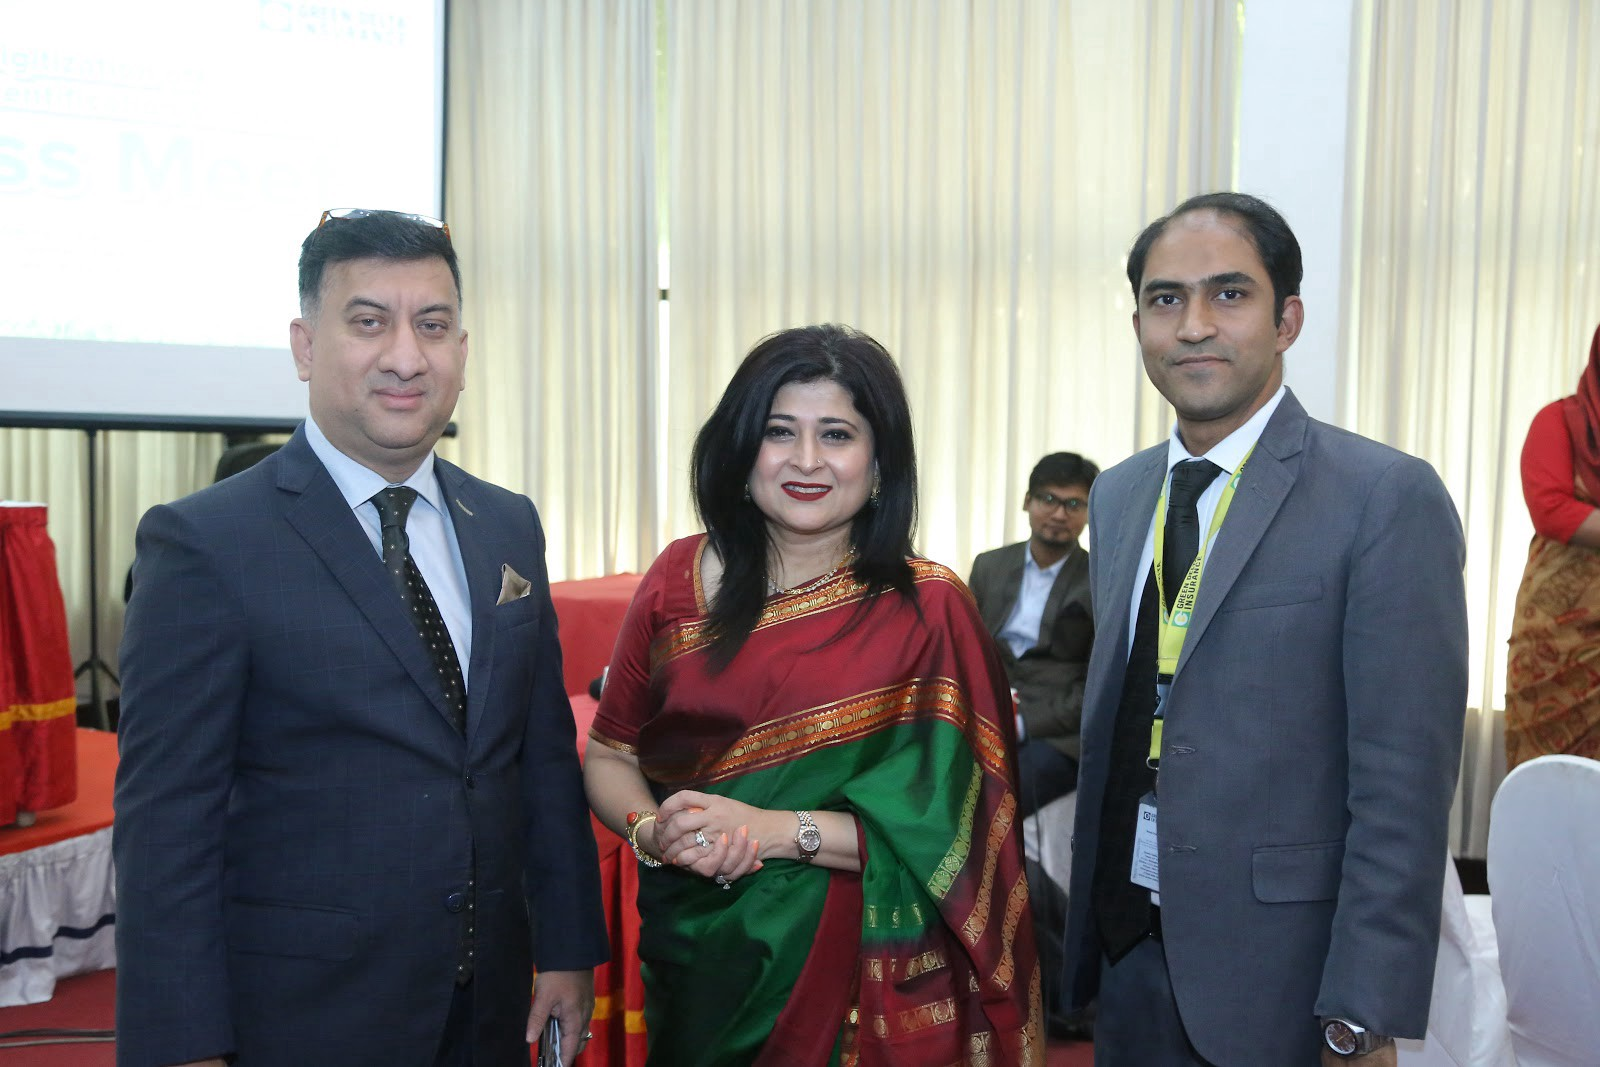 Syed Moinuddin Ahmed, Addl. MD & Co. Sec. with Ms. Chowdhury and Ali Tareque Parvez, Deputy Senior VP, Underwriting Mgt. Dept